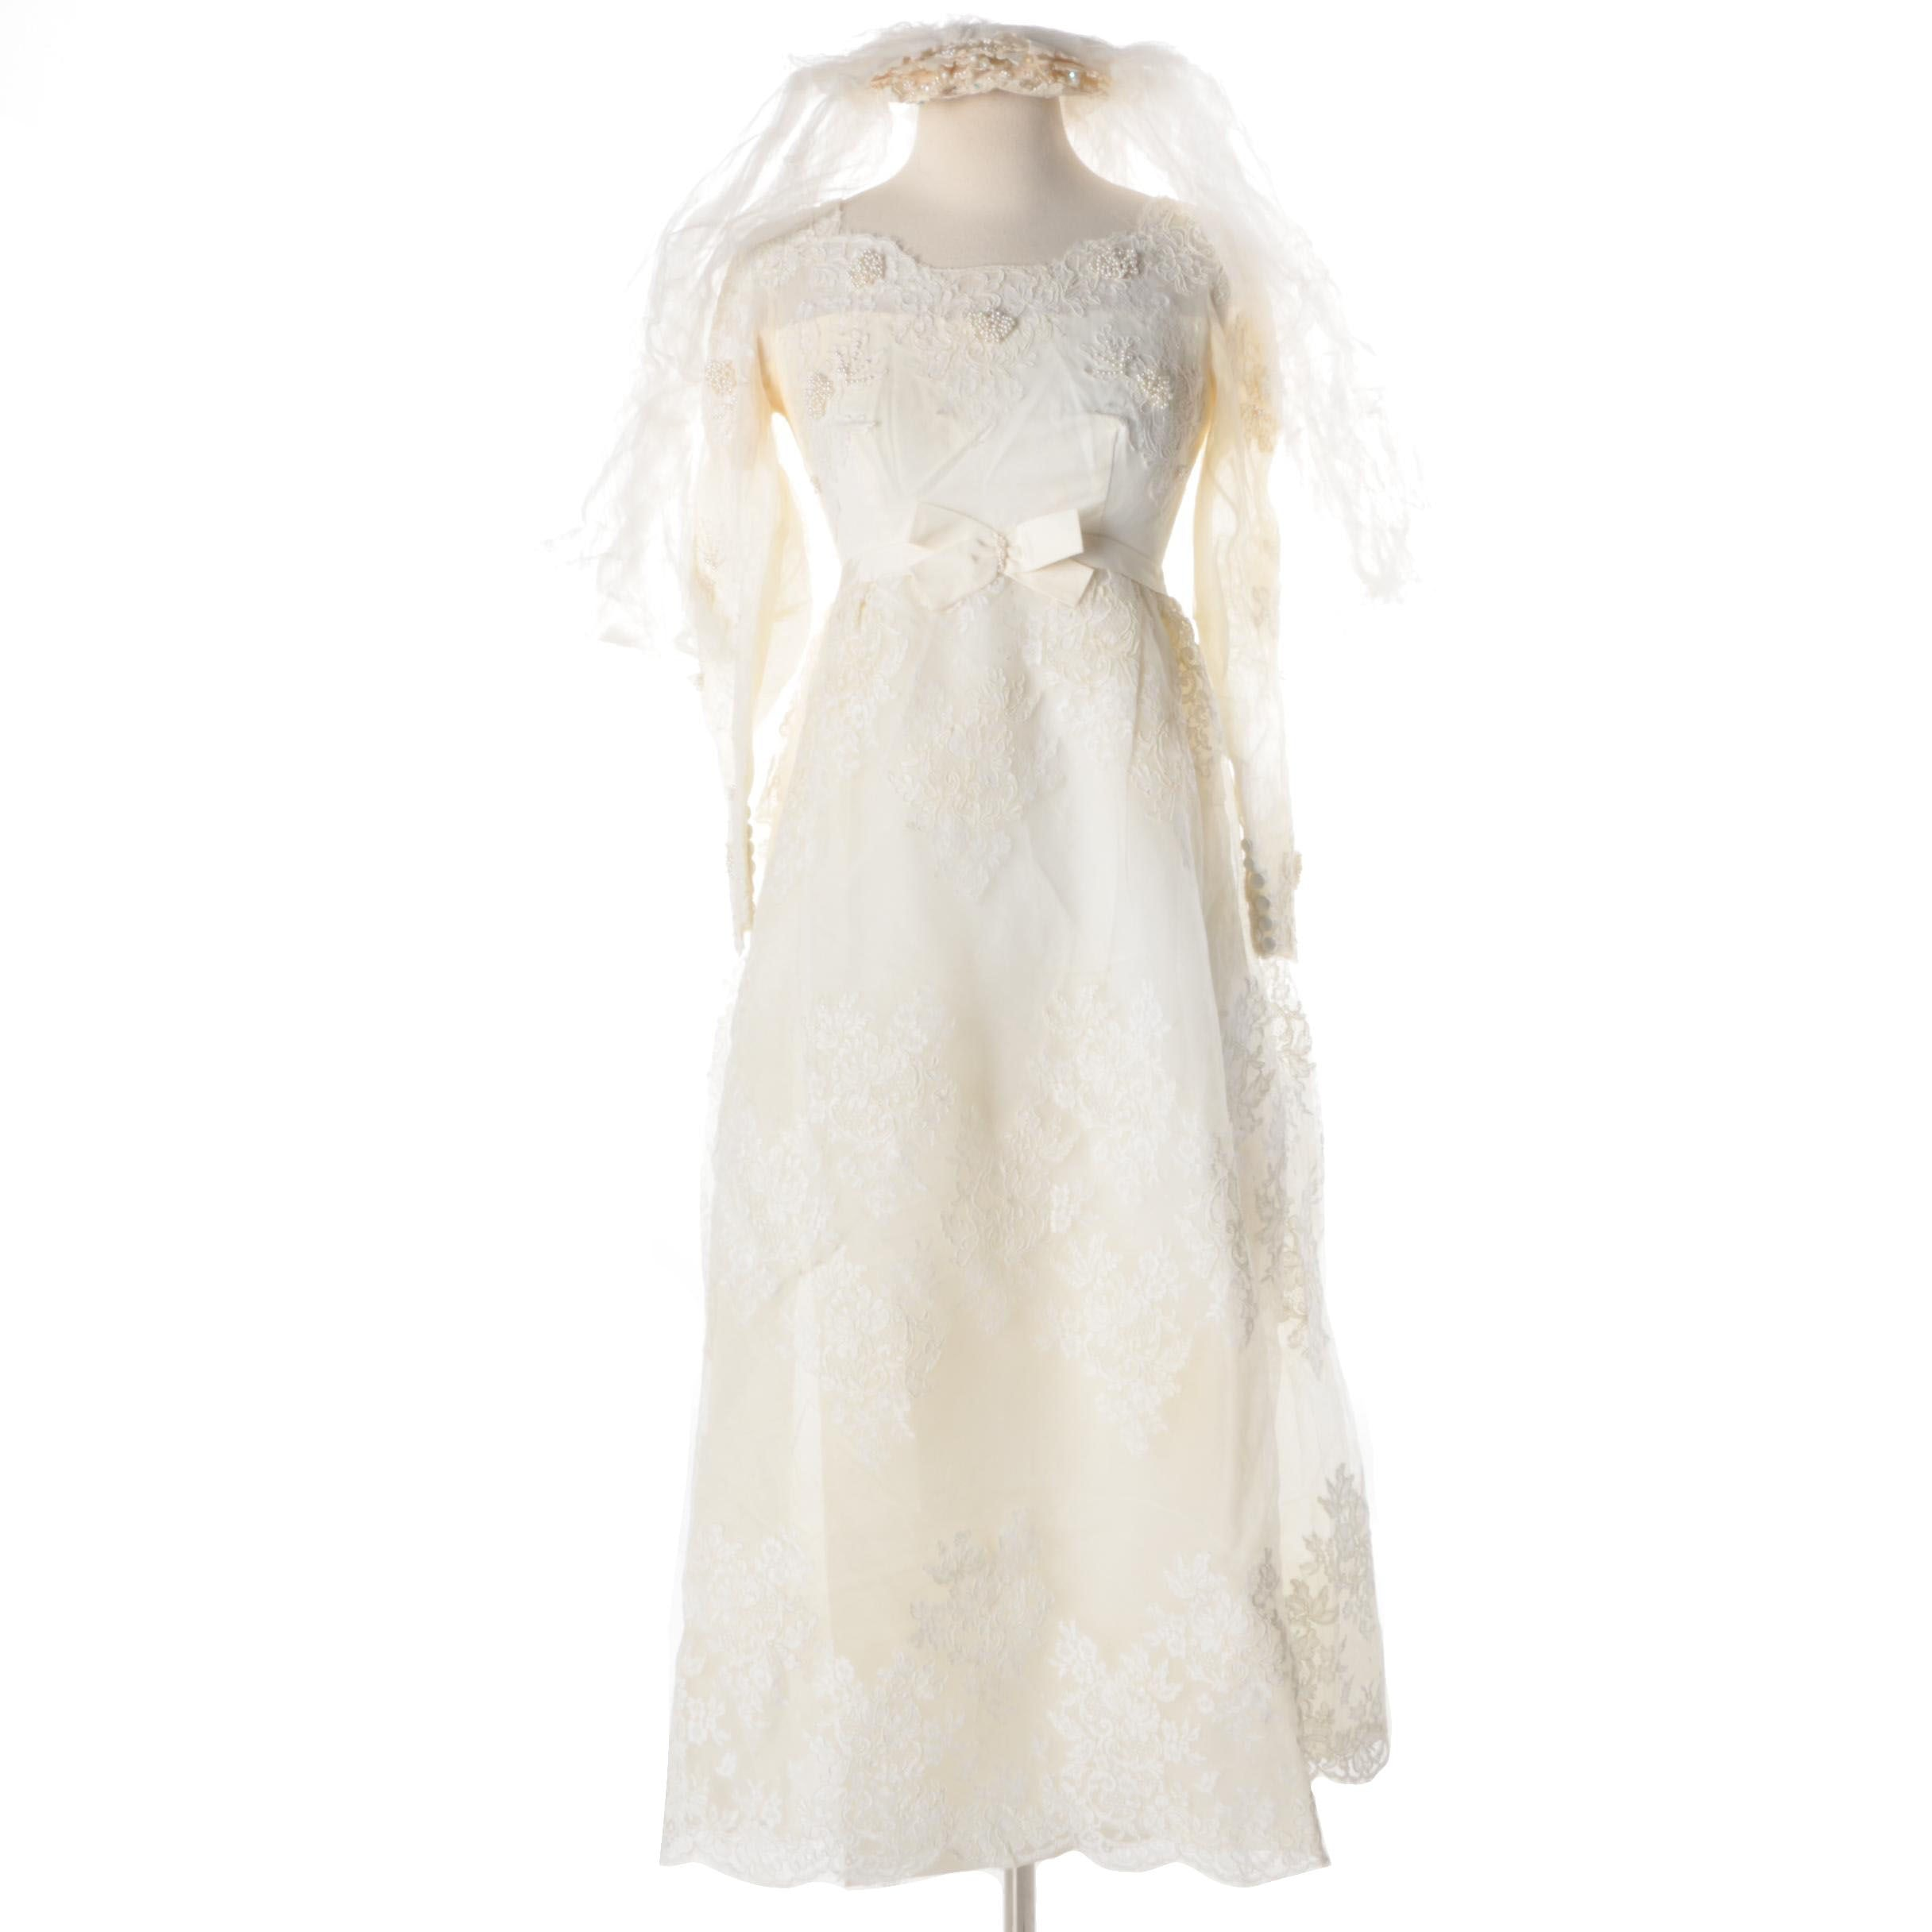 1960s Vintage Alfred Angelo Edythe Vincent Designed Wedding Dress